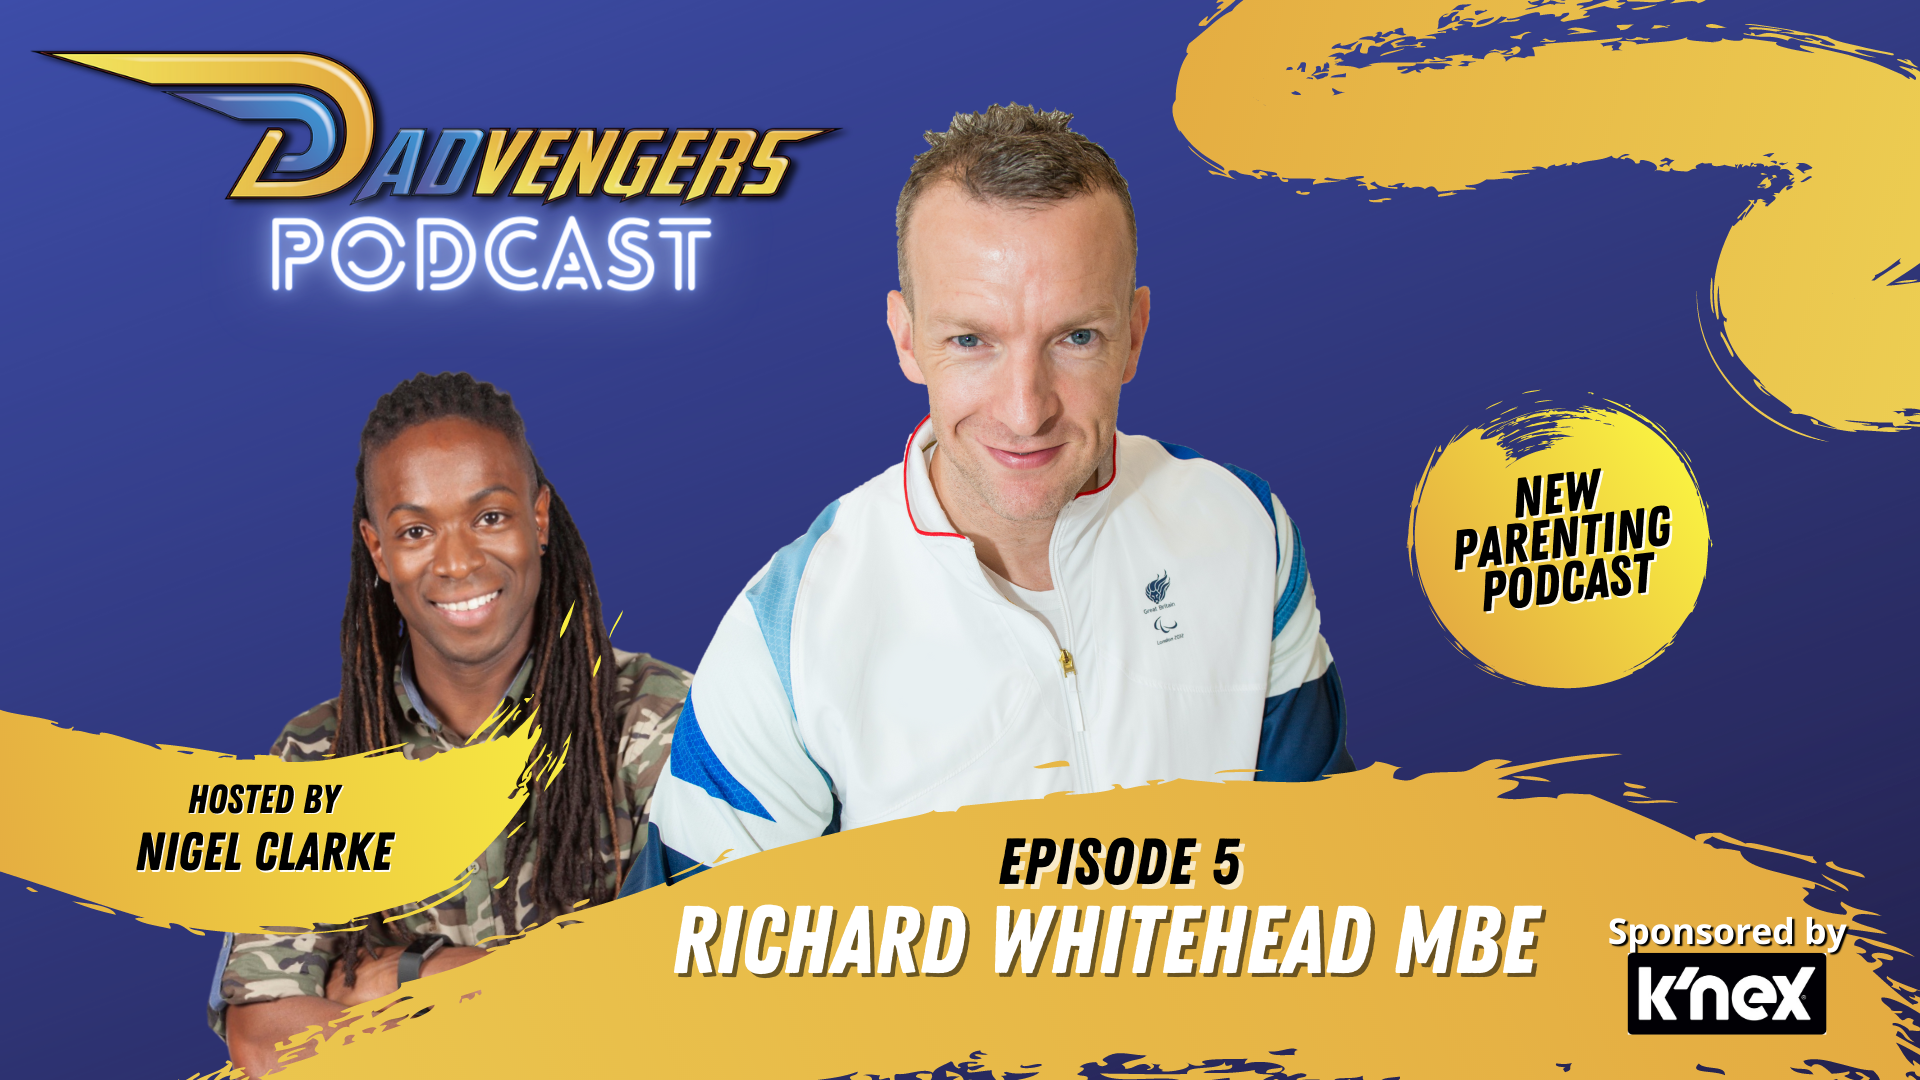 Dadvengers Podcast Episode 5 - Richard Whitehead MBE